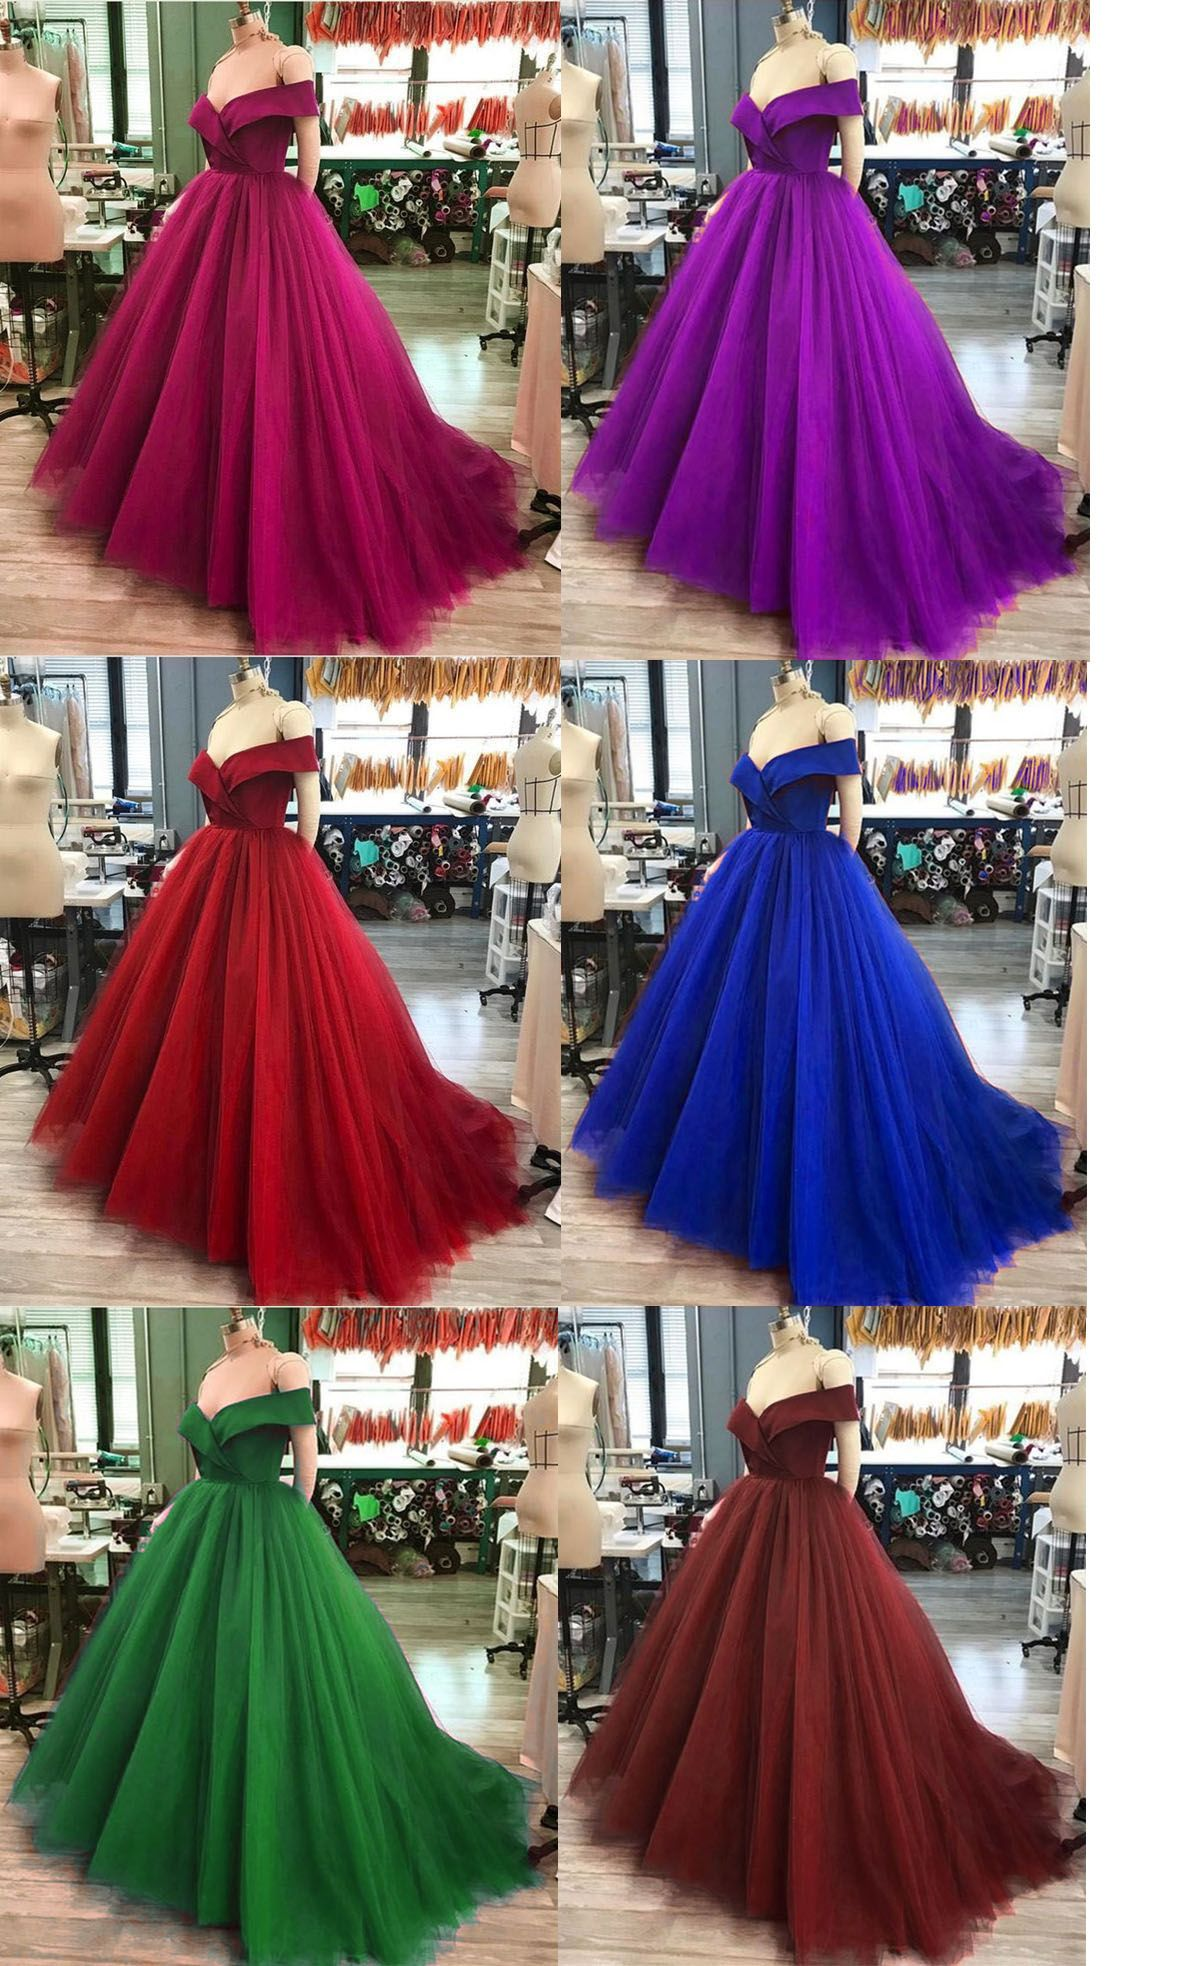 efa8d99cc42 2018 Quinceanera Dresses with Cap Sleeve Simple Satin Tulle Ball Gowns  Sweet 16 Dresses  purple  red  darkred  burgundy  royalblue  green  sweet16   quince